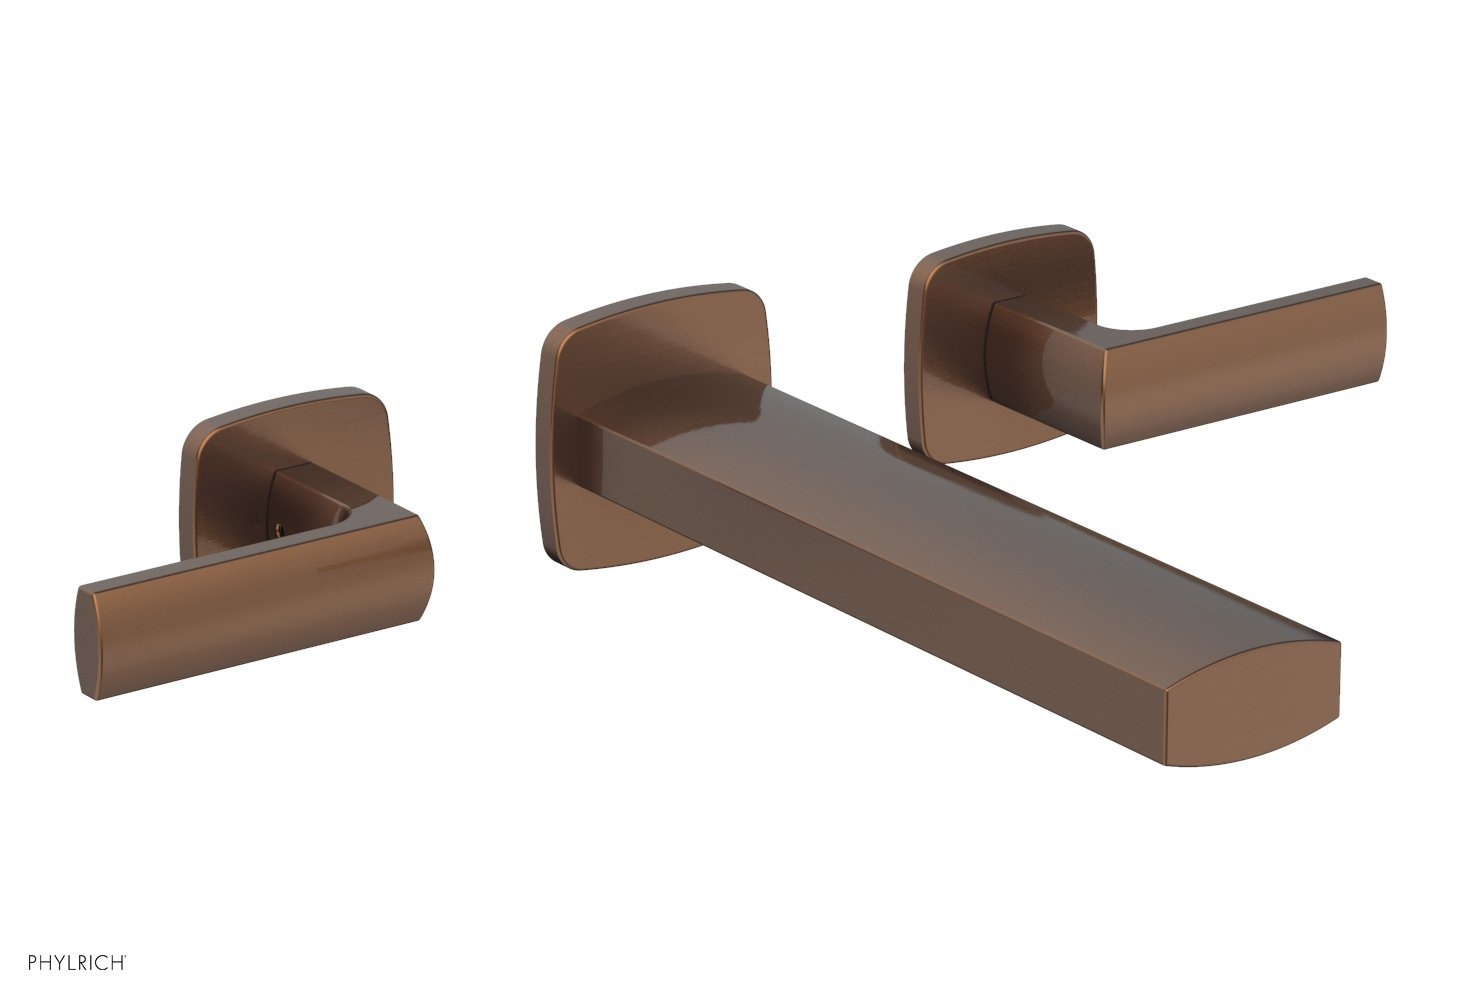 Phylrich 181-57-05A RADI Wall Tub Set - Lever Handles - Antique Copper